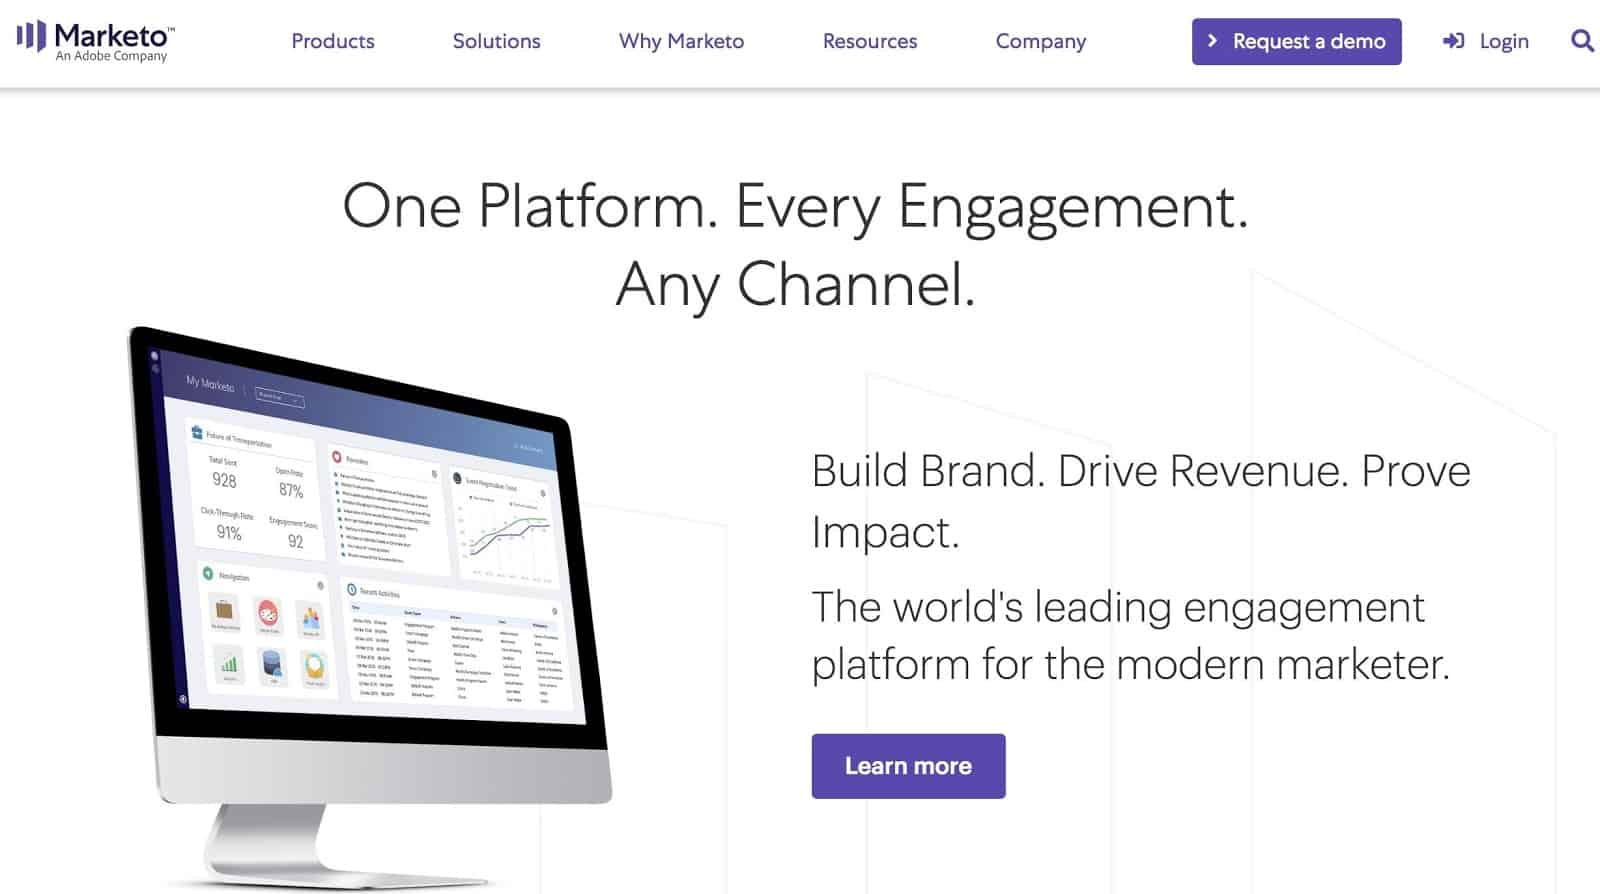 marketo marketing automation tools